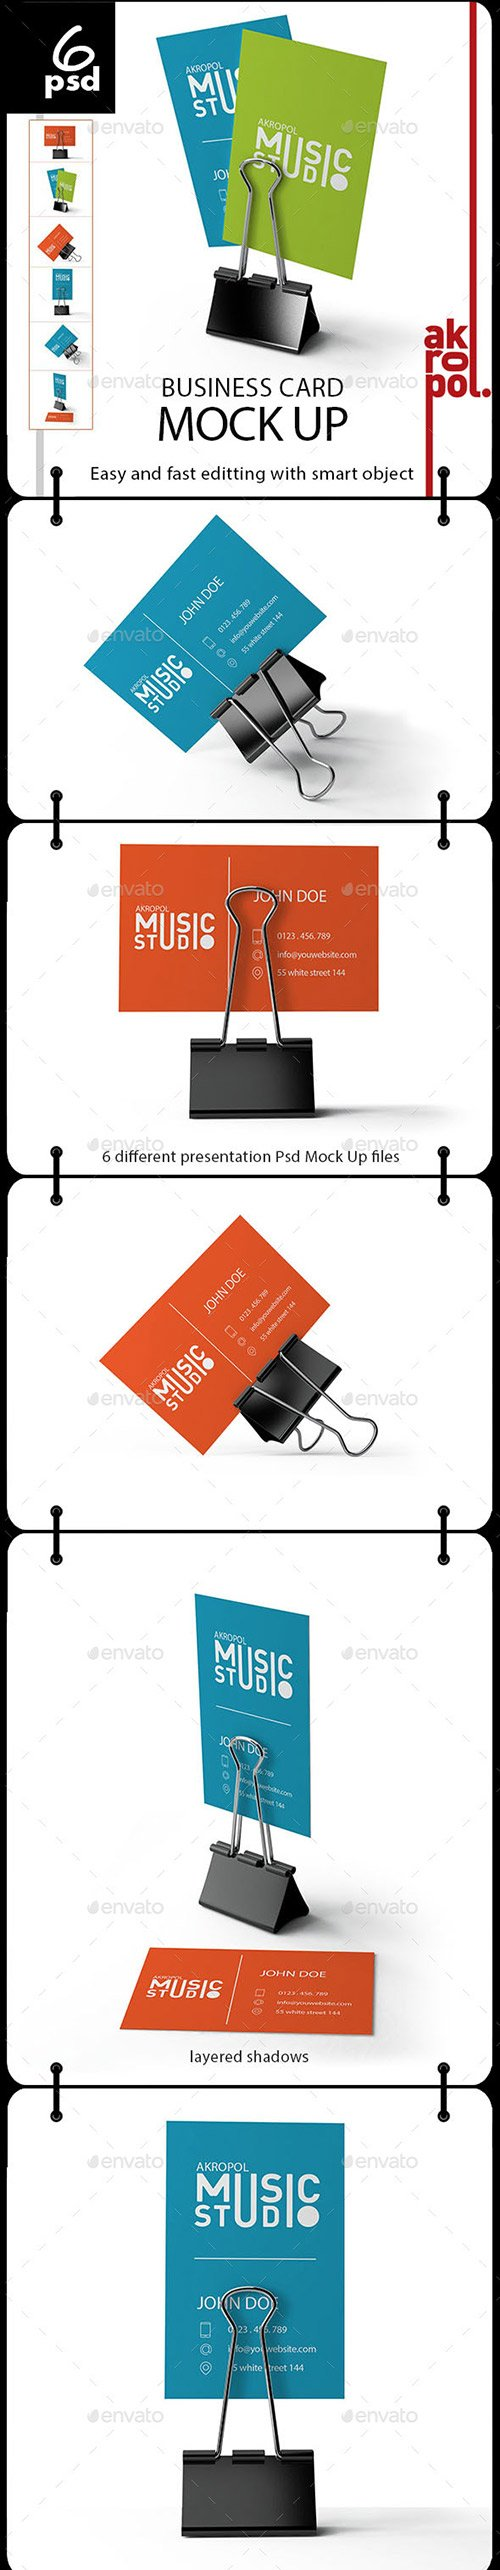 GraphicRiver - Business Card Mockup 22323548